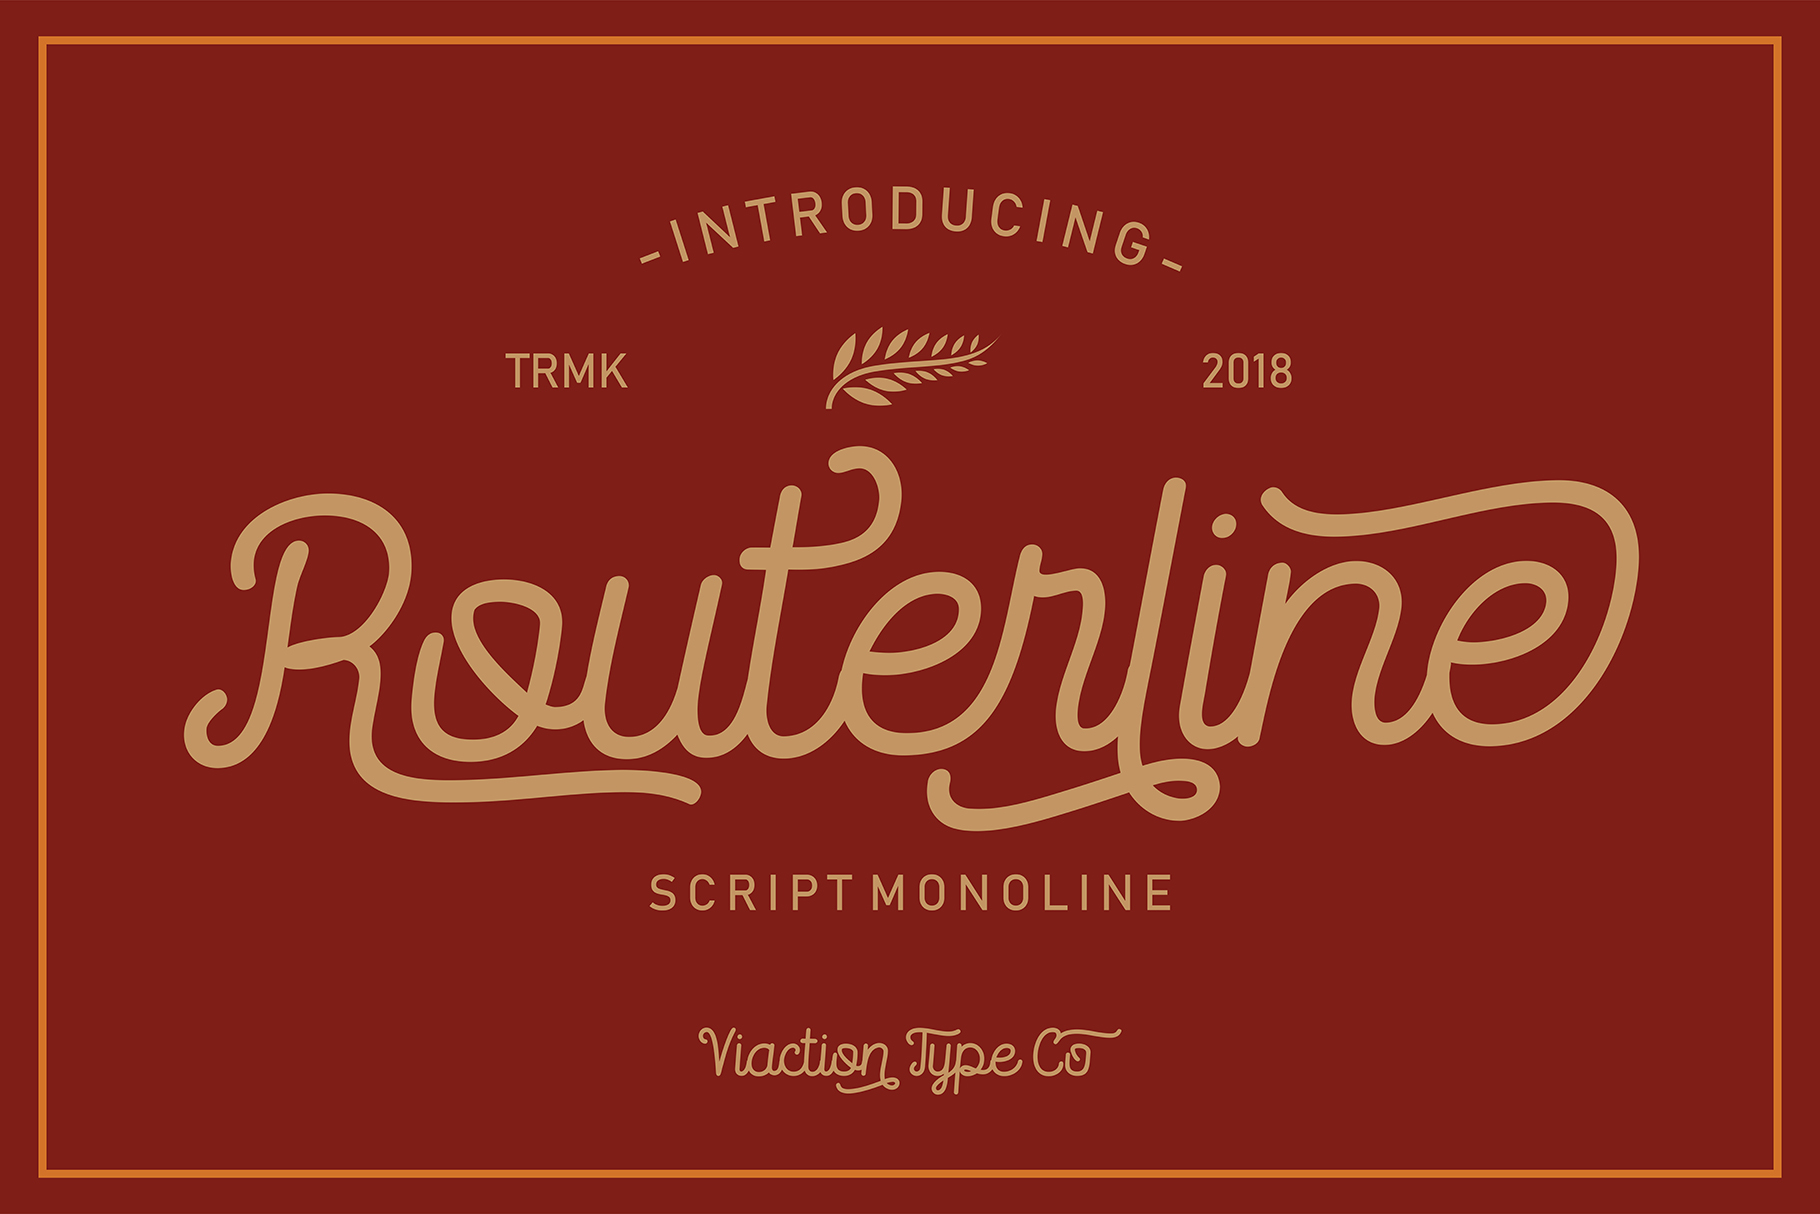 Routerline - 4 Style Font example image 1